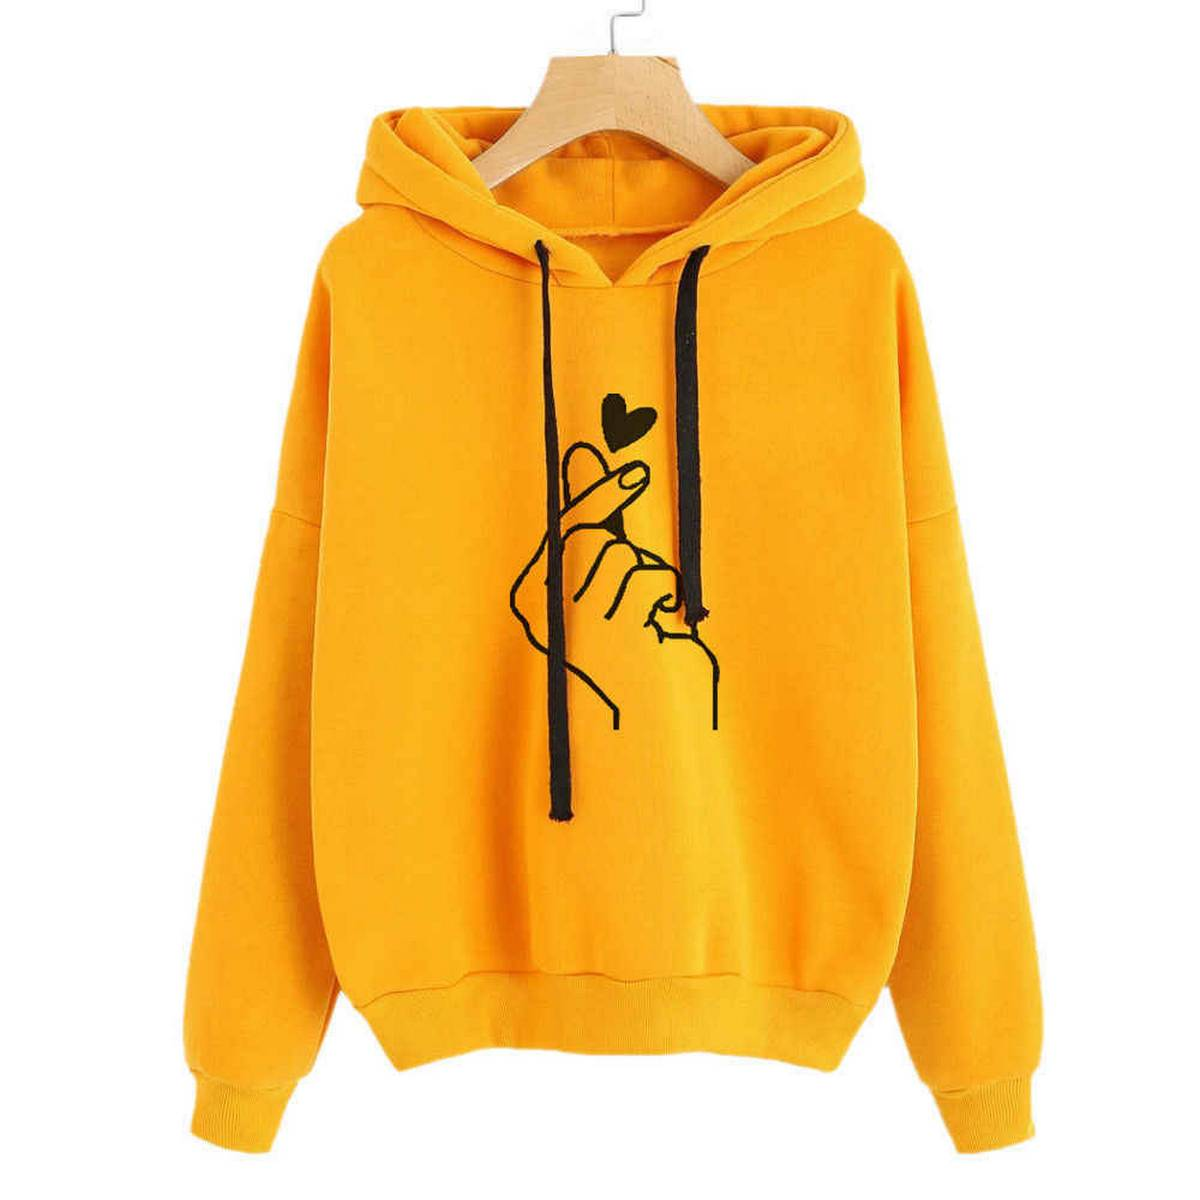 Winter Wear Stylish Hoodie for Girls and Women